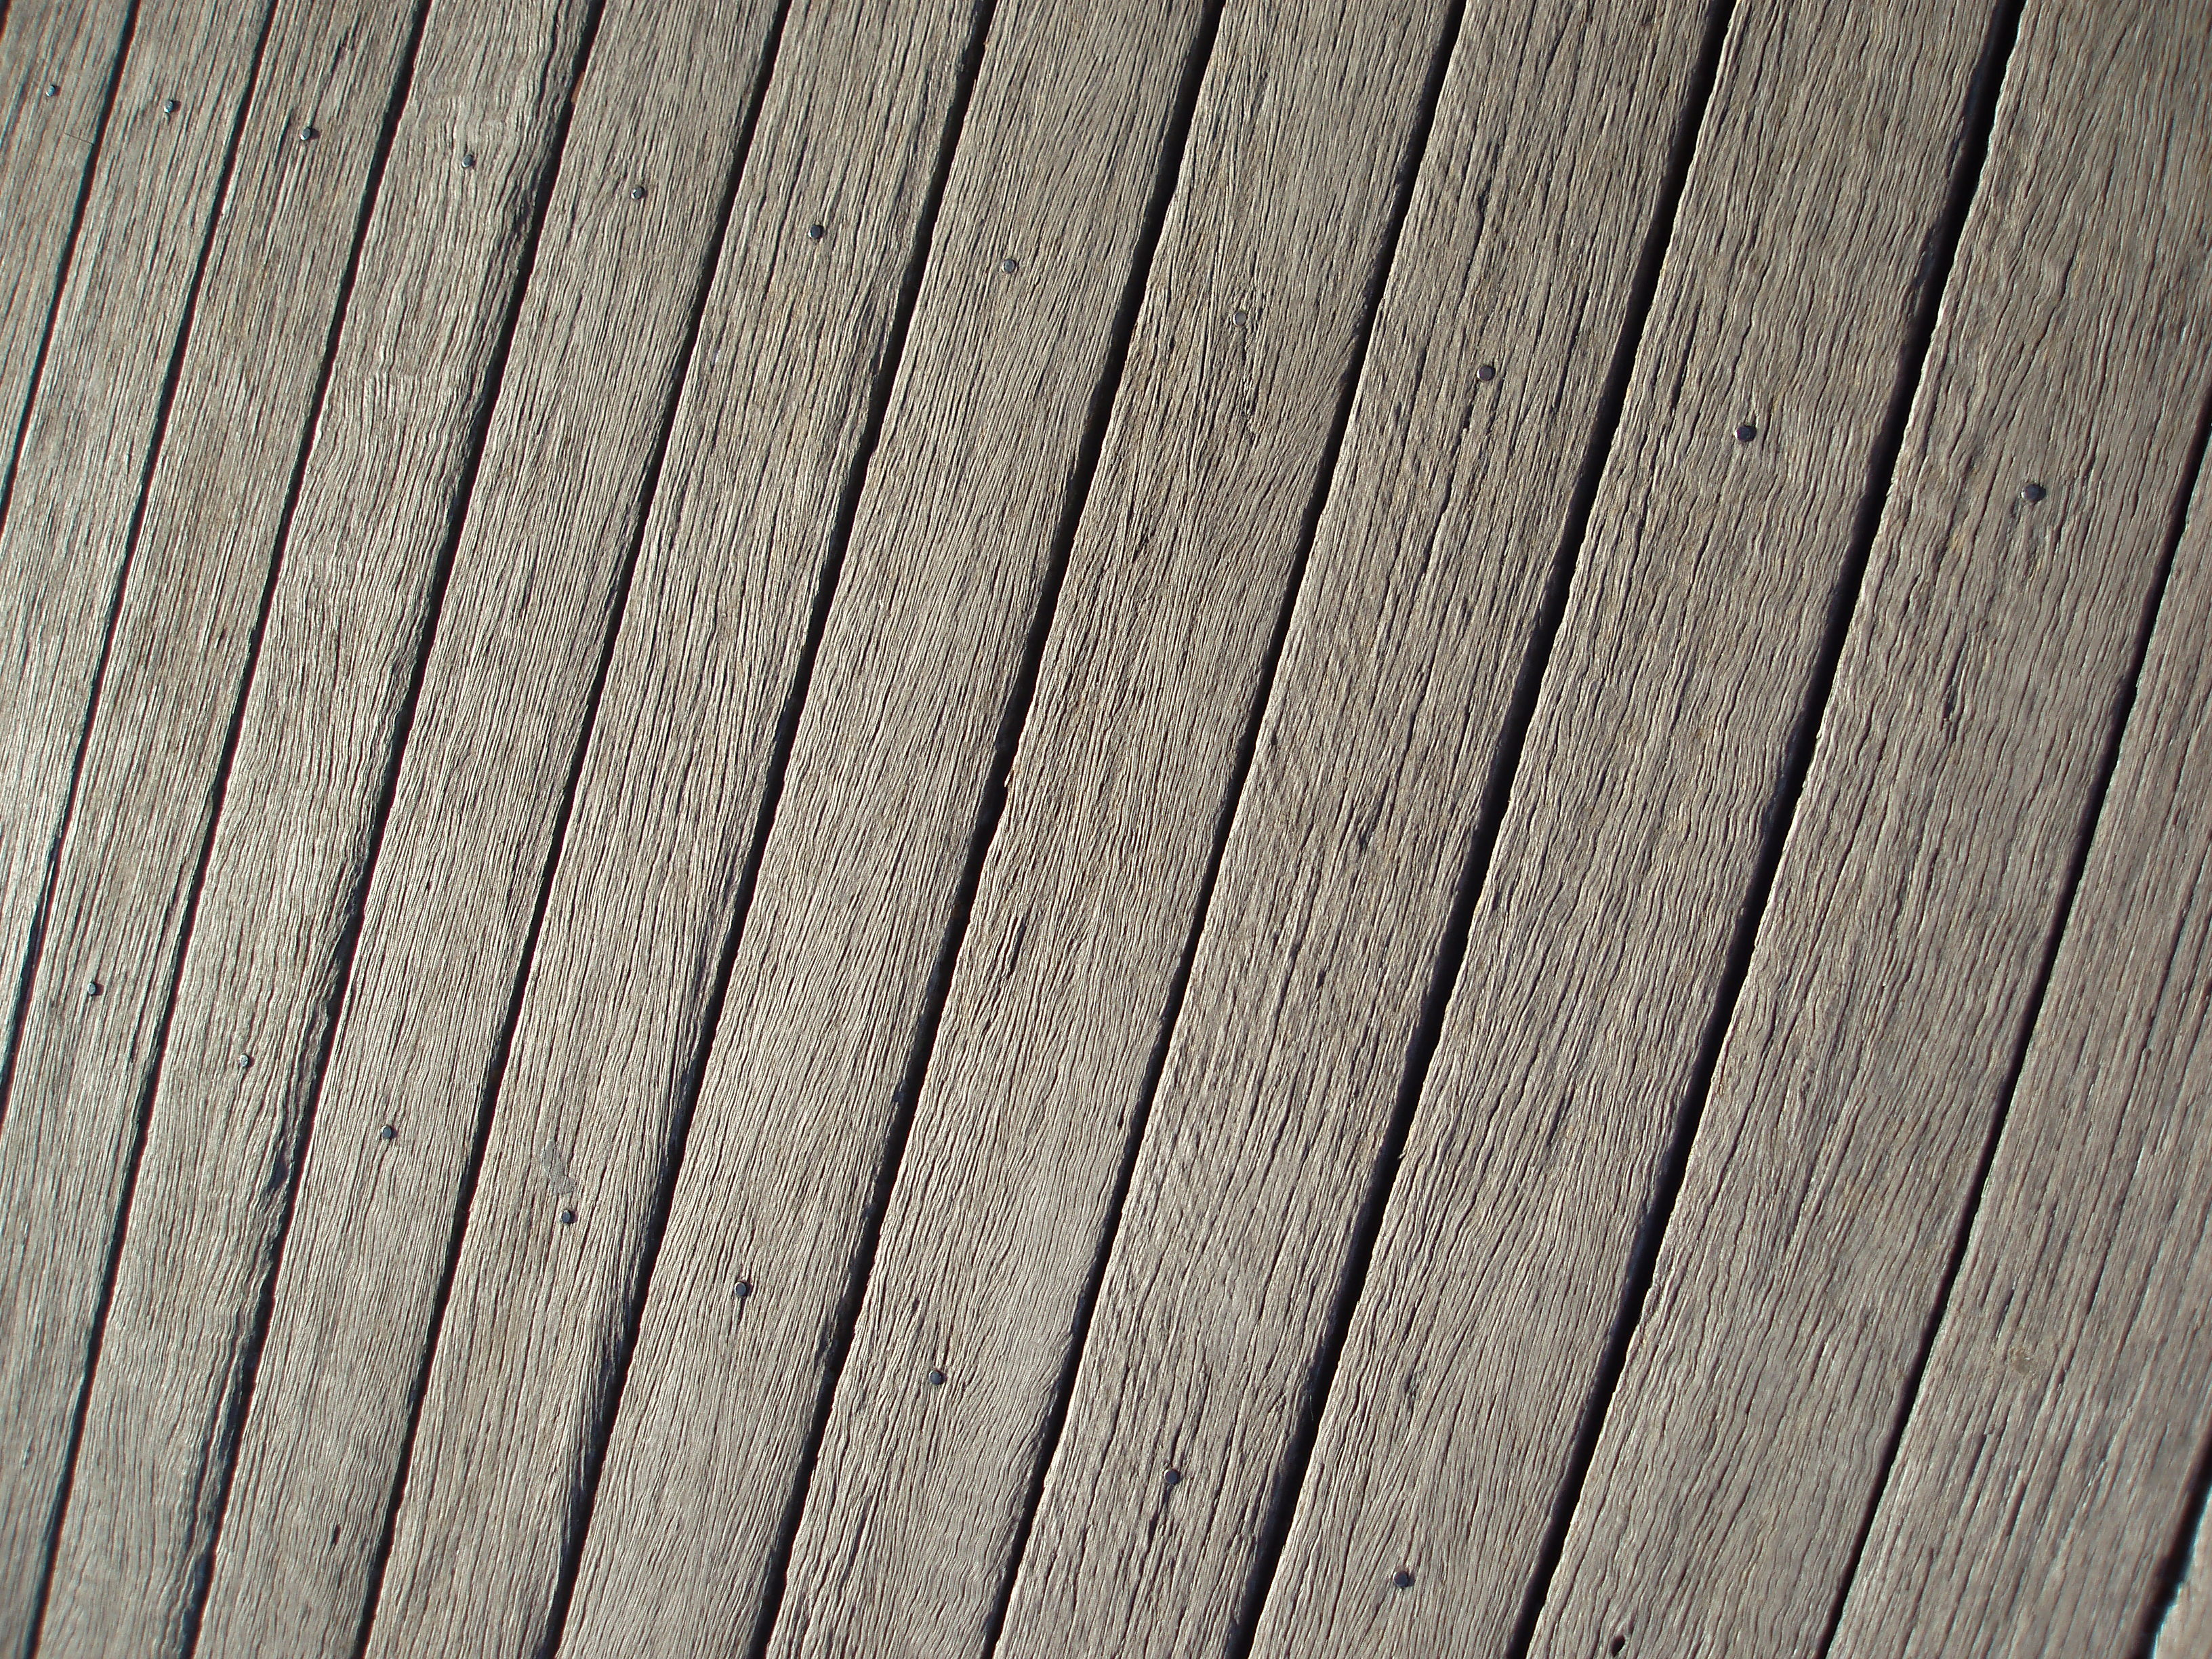 wooden decking with jet washed and sun bleached surface